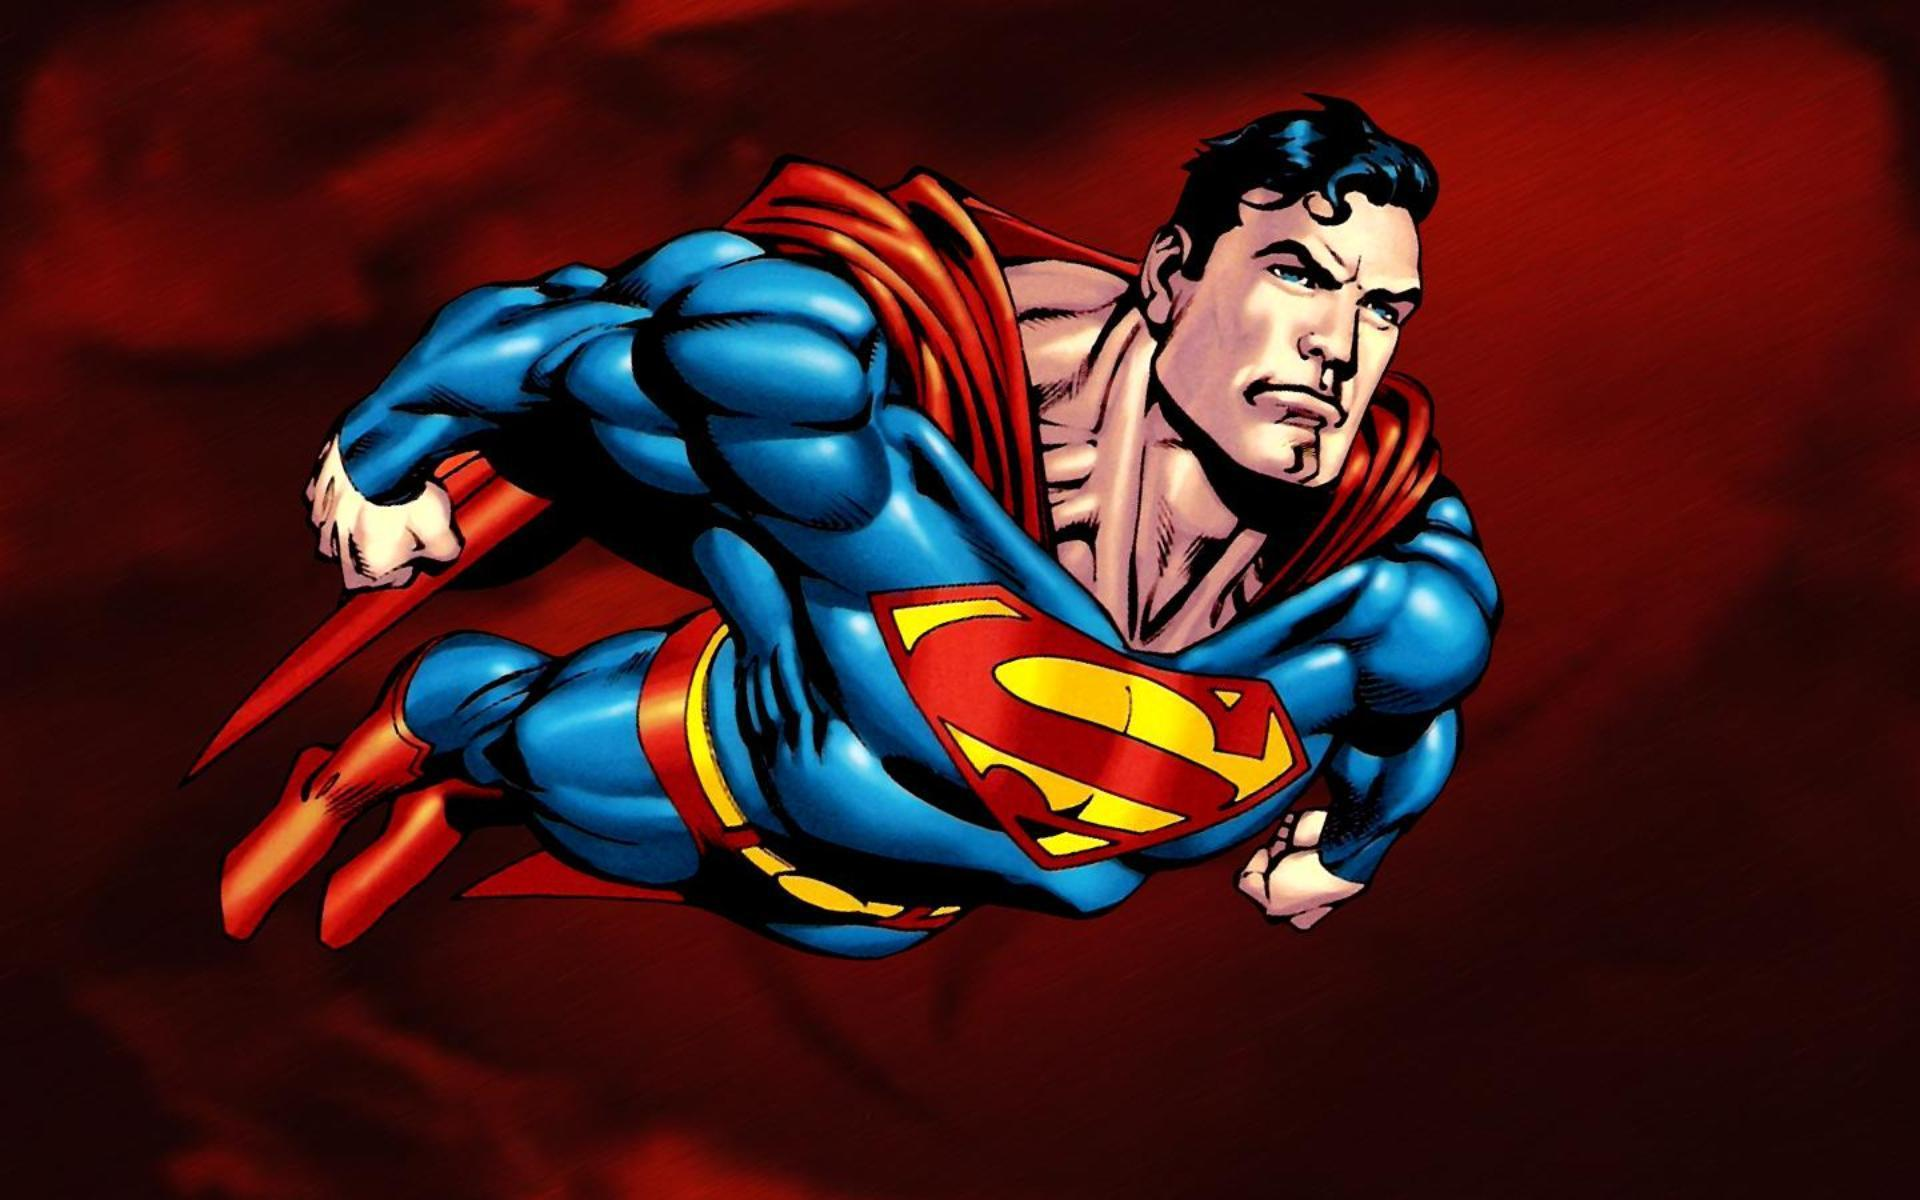 superman comic art wallpaper - photo #9